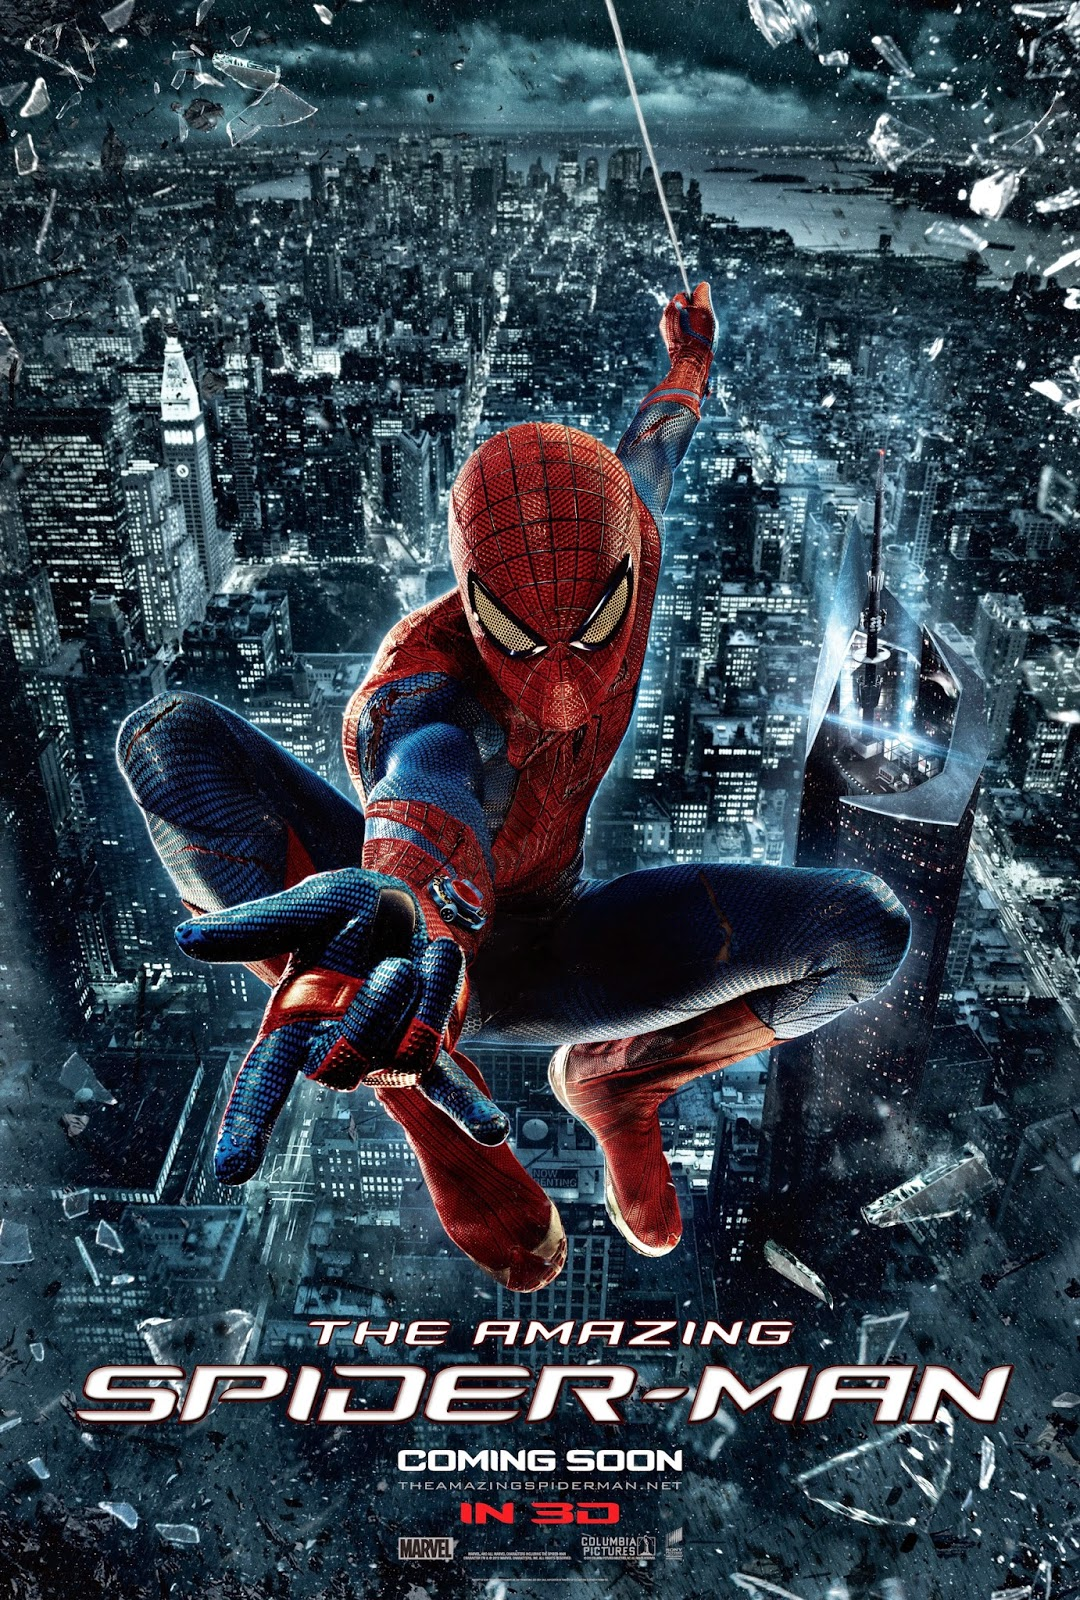 watch free full movie streaming online: watch the amazing spider-man